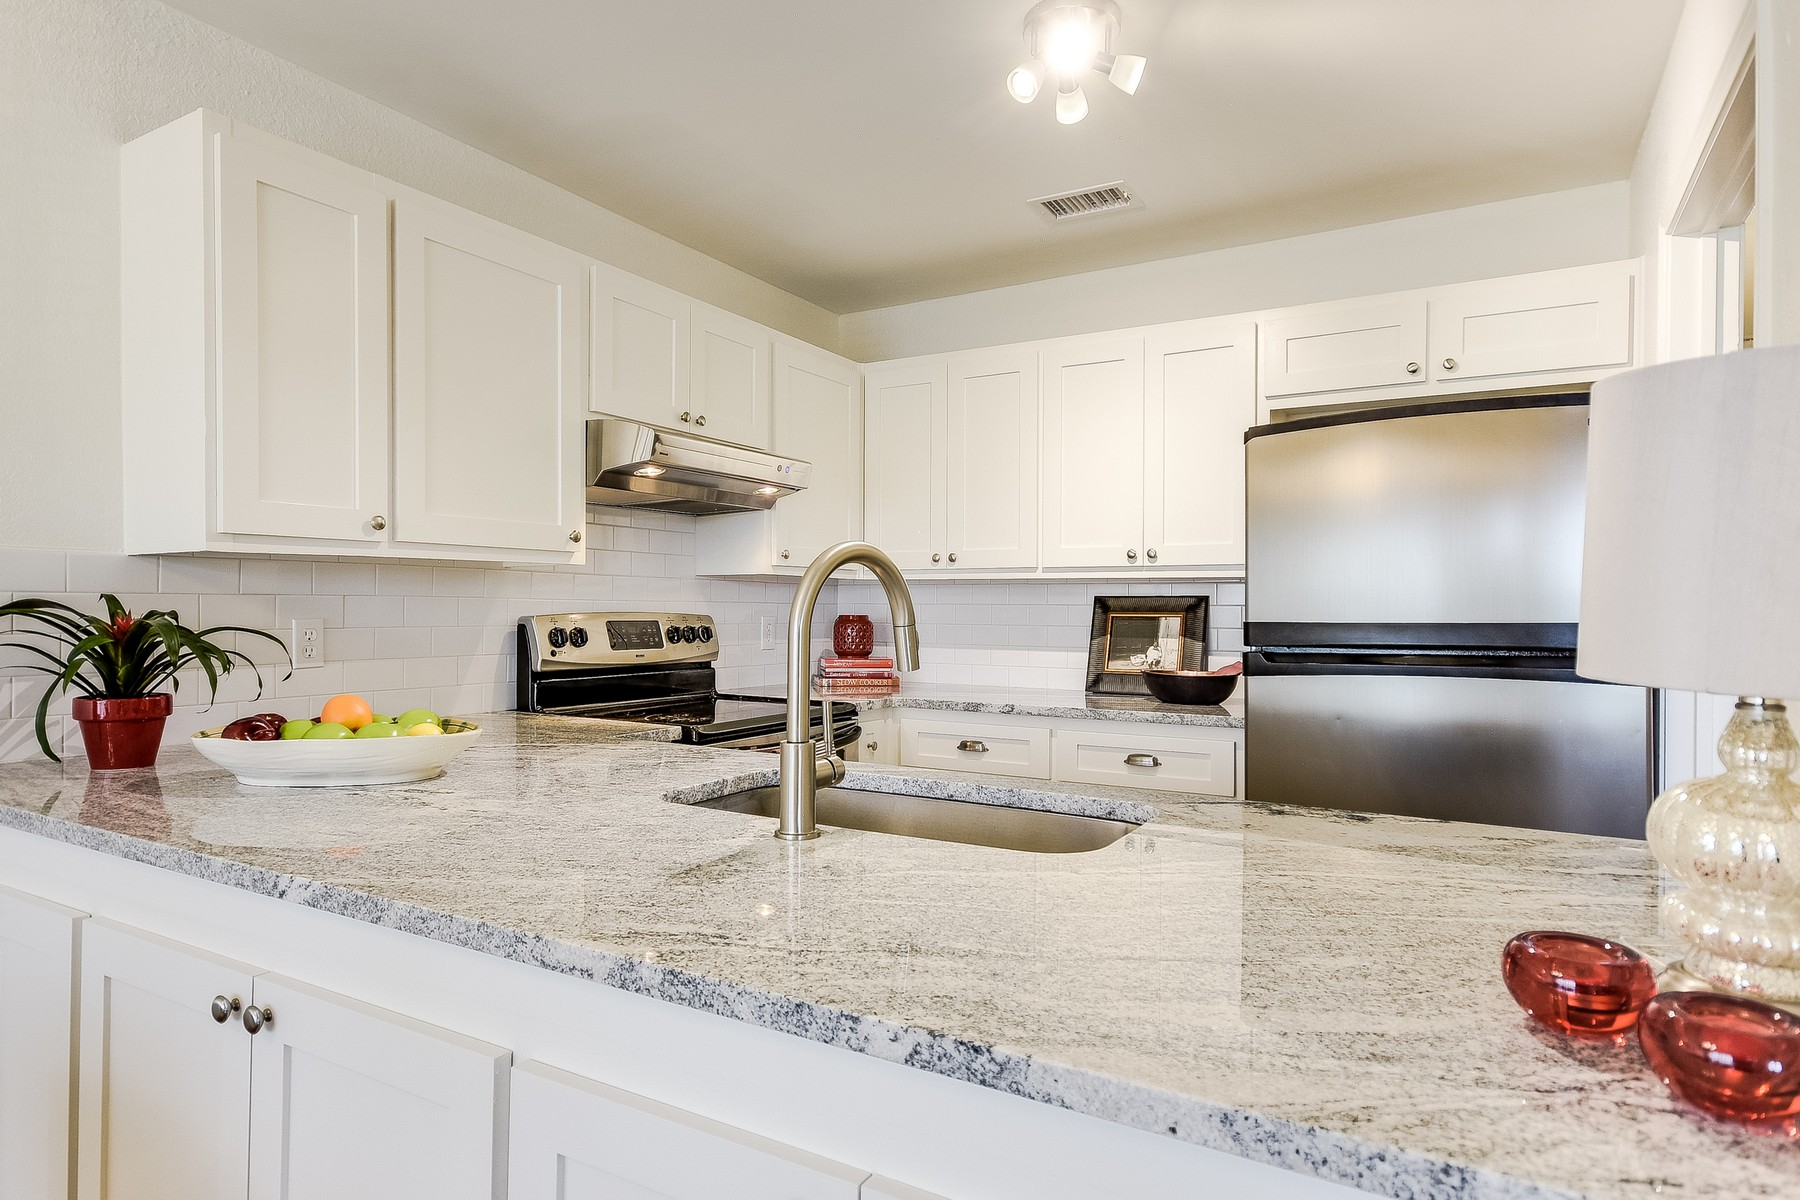 Additional photo for property listing at Totally Renovated Clarksville Condo! 1610 Waterston Ave 12 Austin, Texas 78703 United States